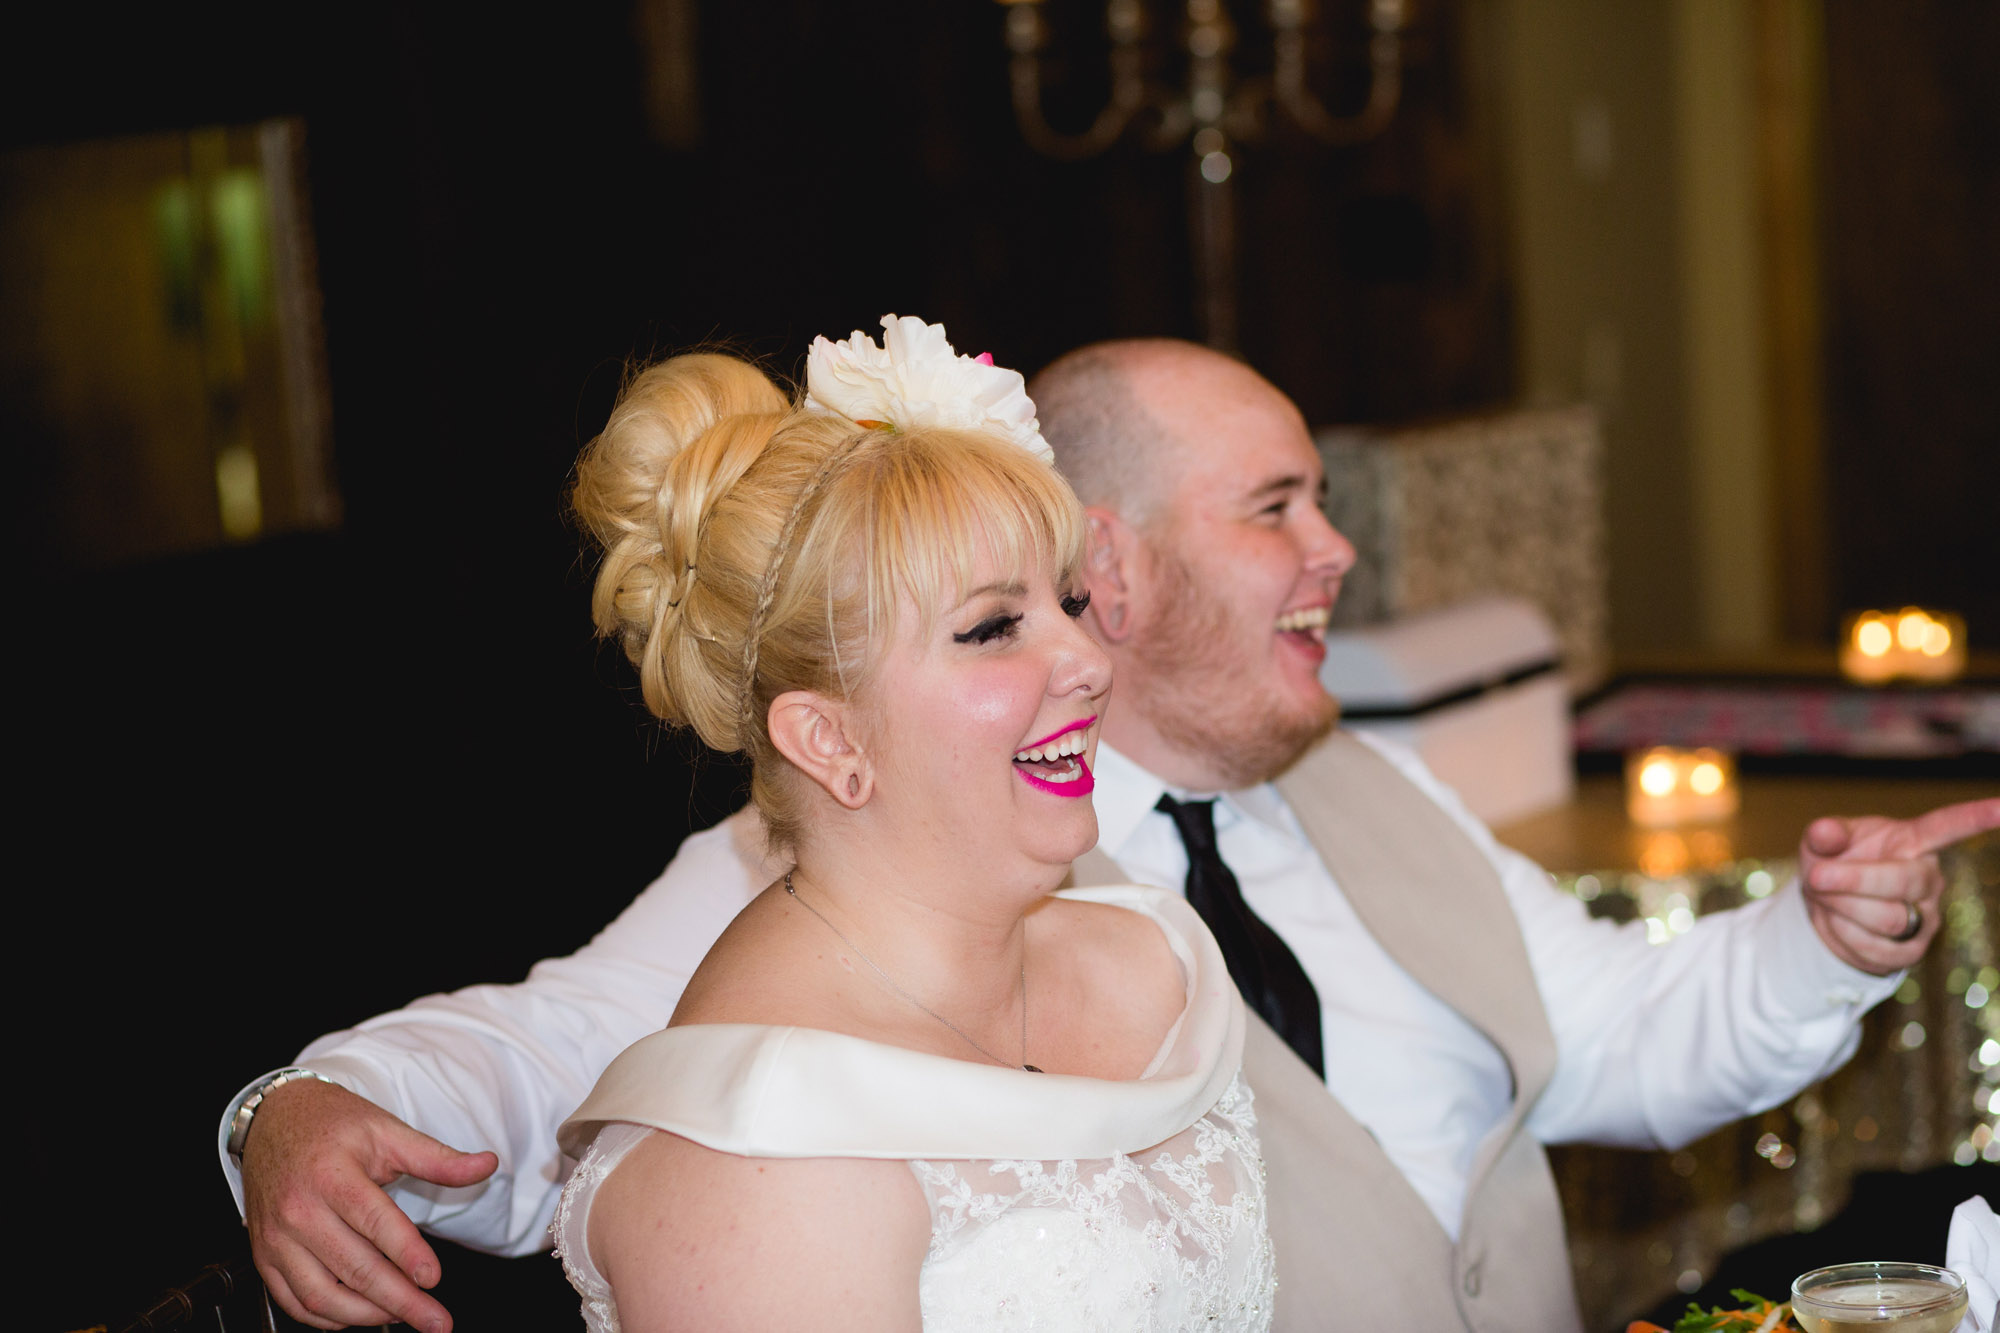 Caitlin & Joe's Stroudsmoor Woodsgate Wedding 87